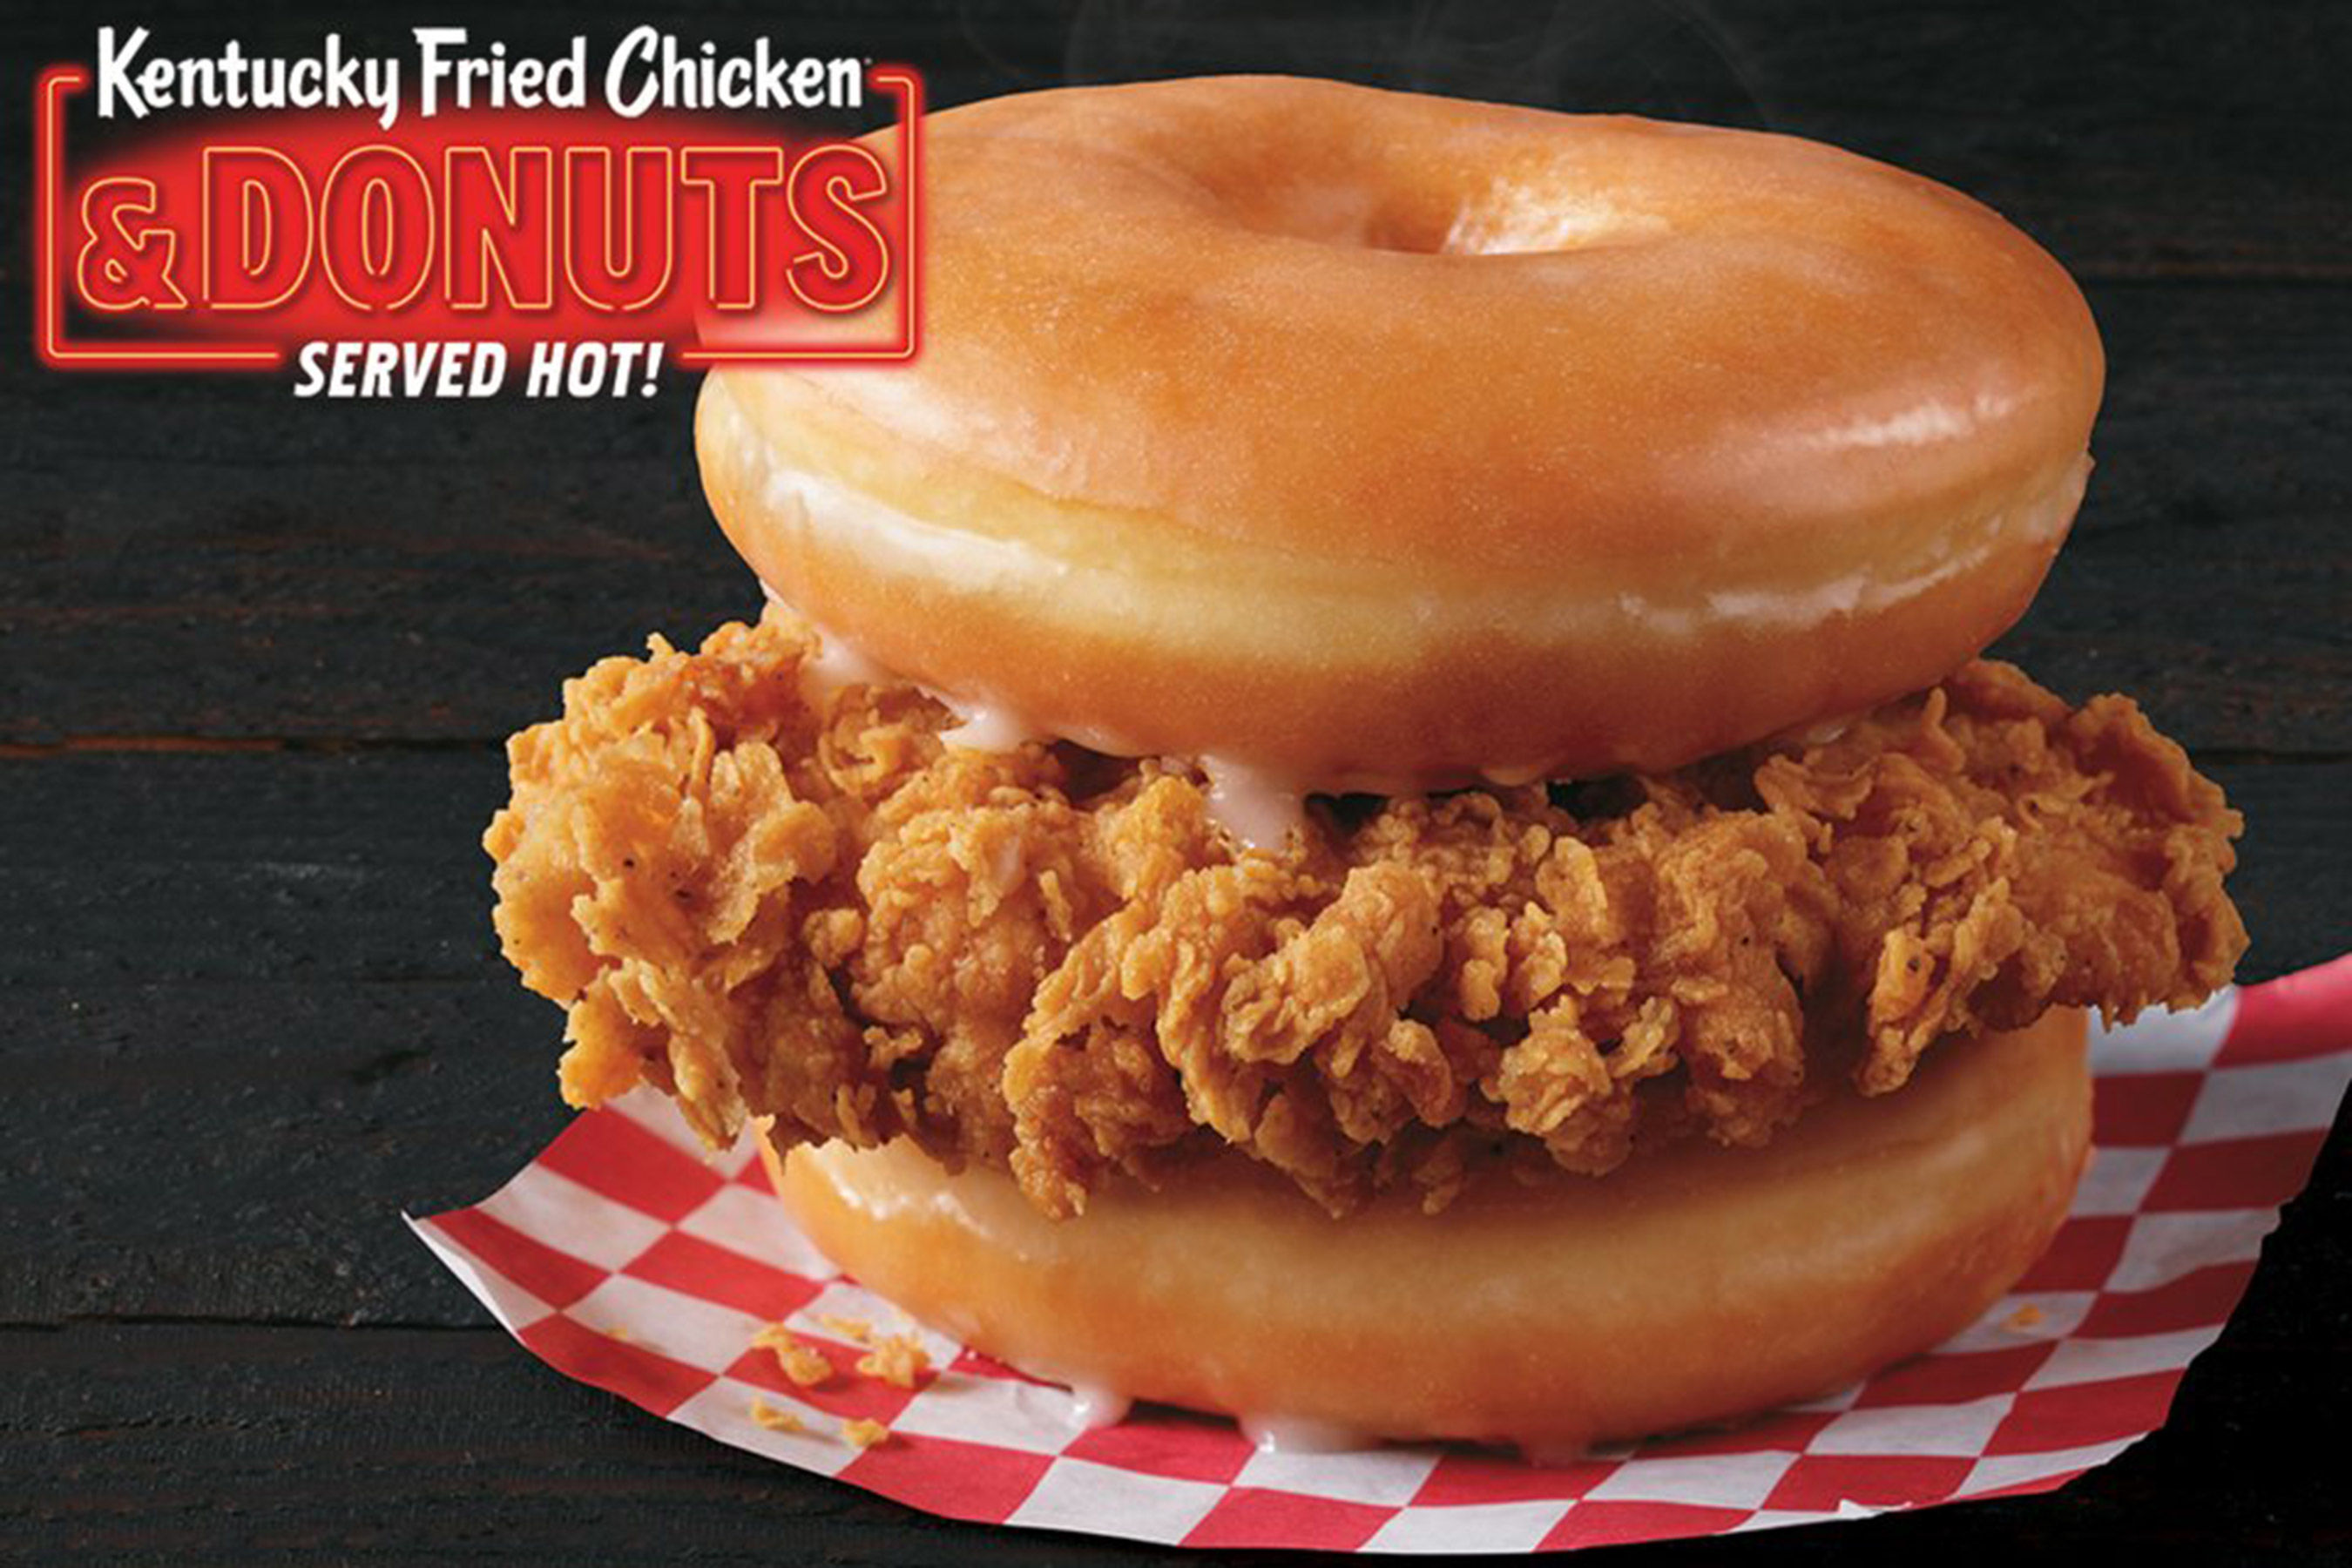 KFC Testing Fried Chicken Sandwich That's Between 2 Glazed Donuts